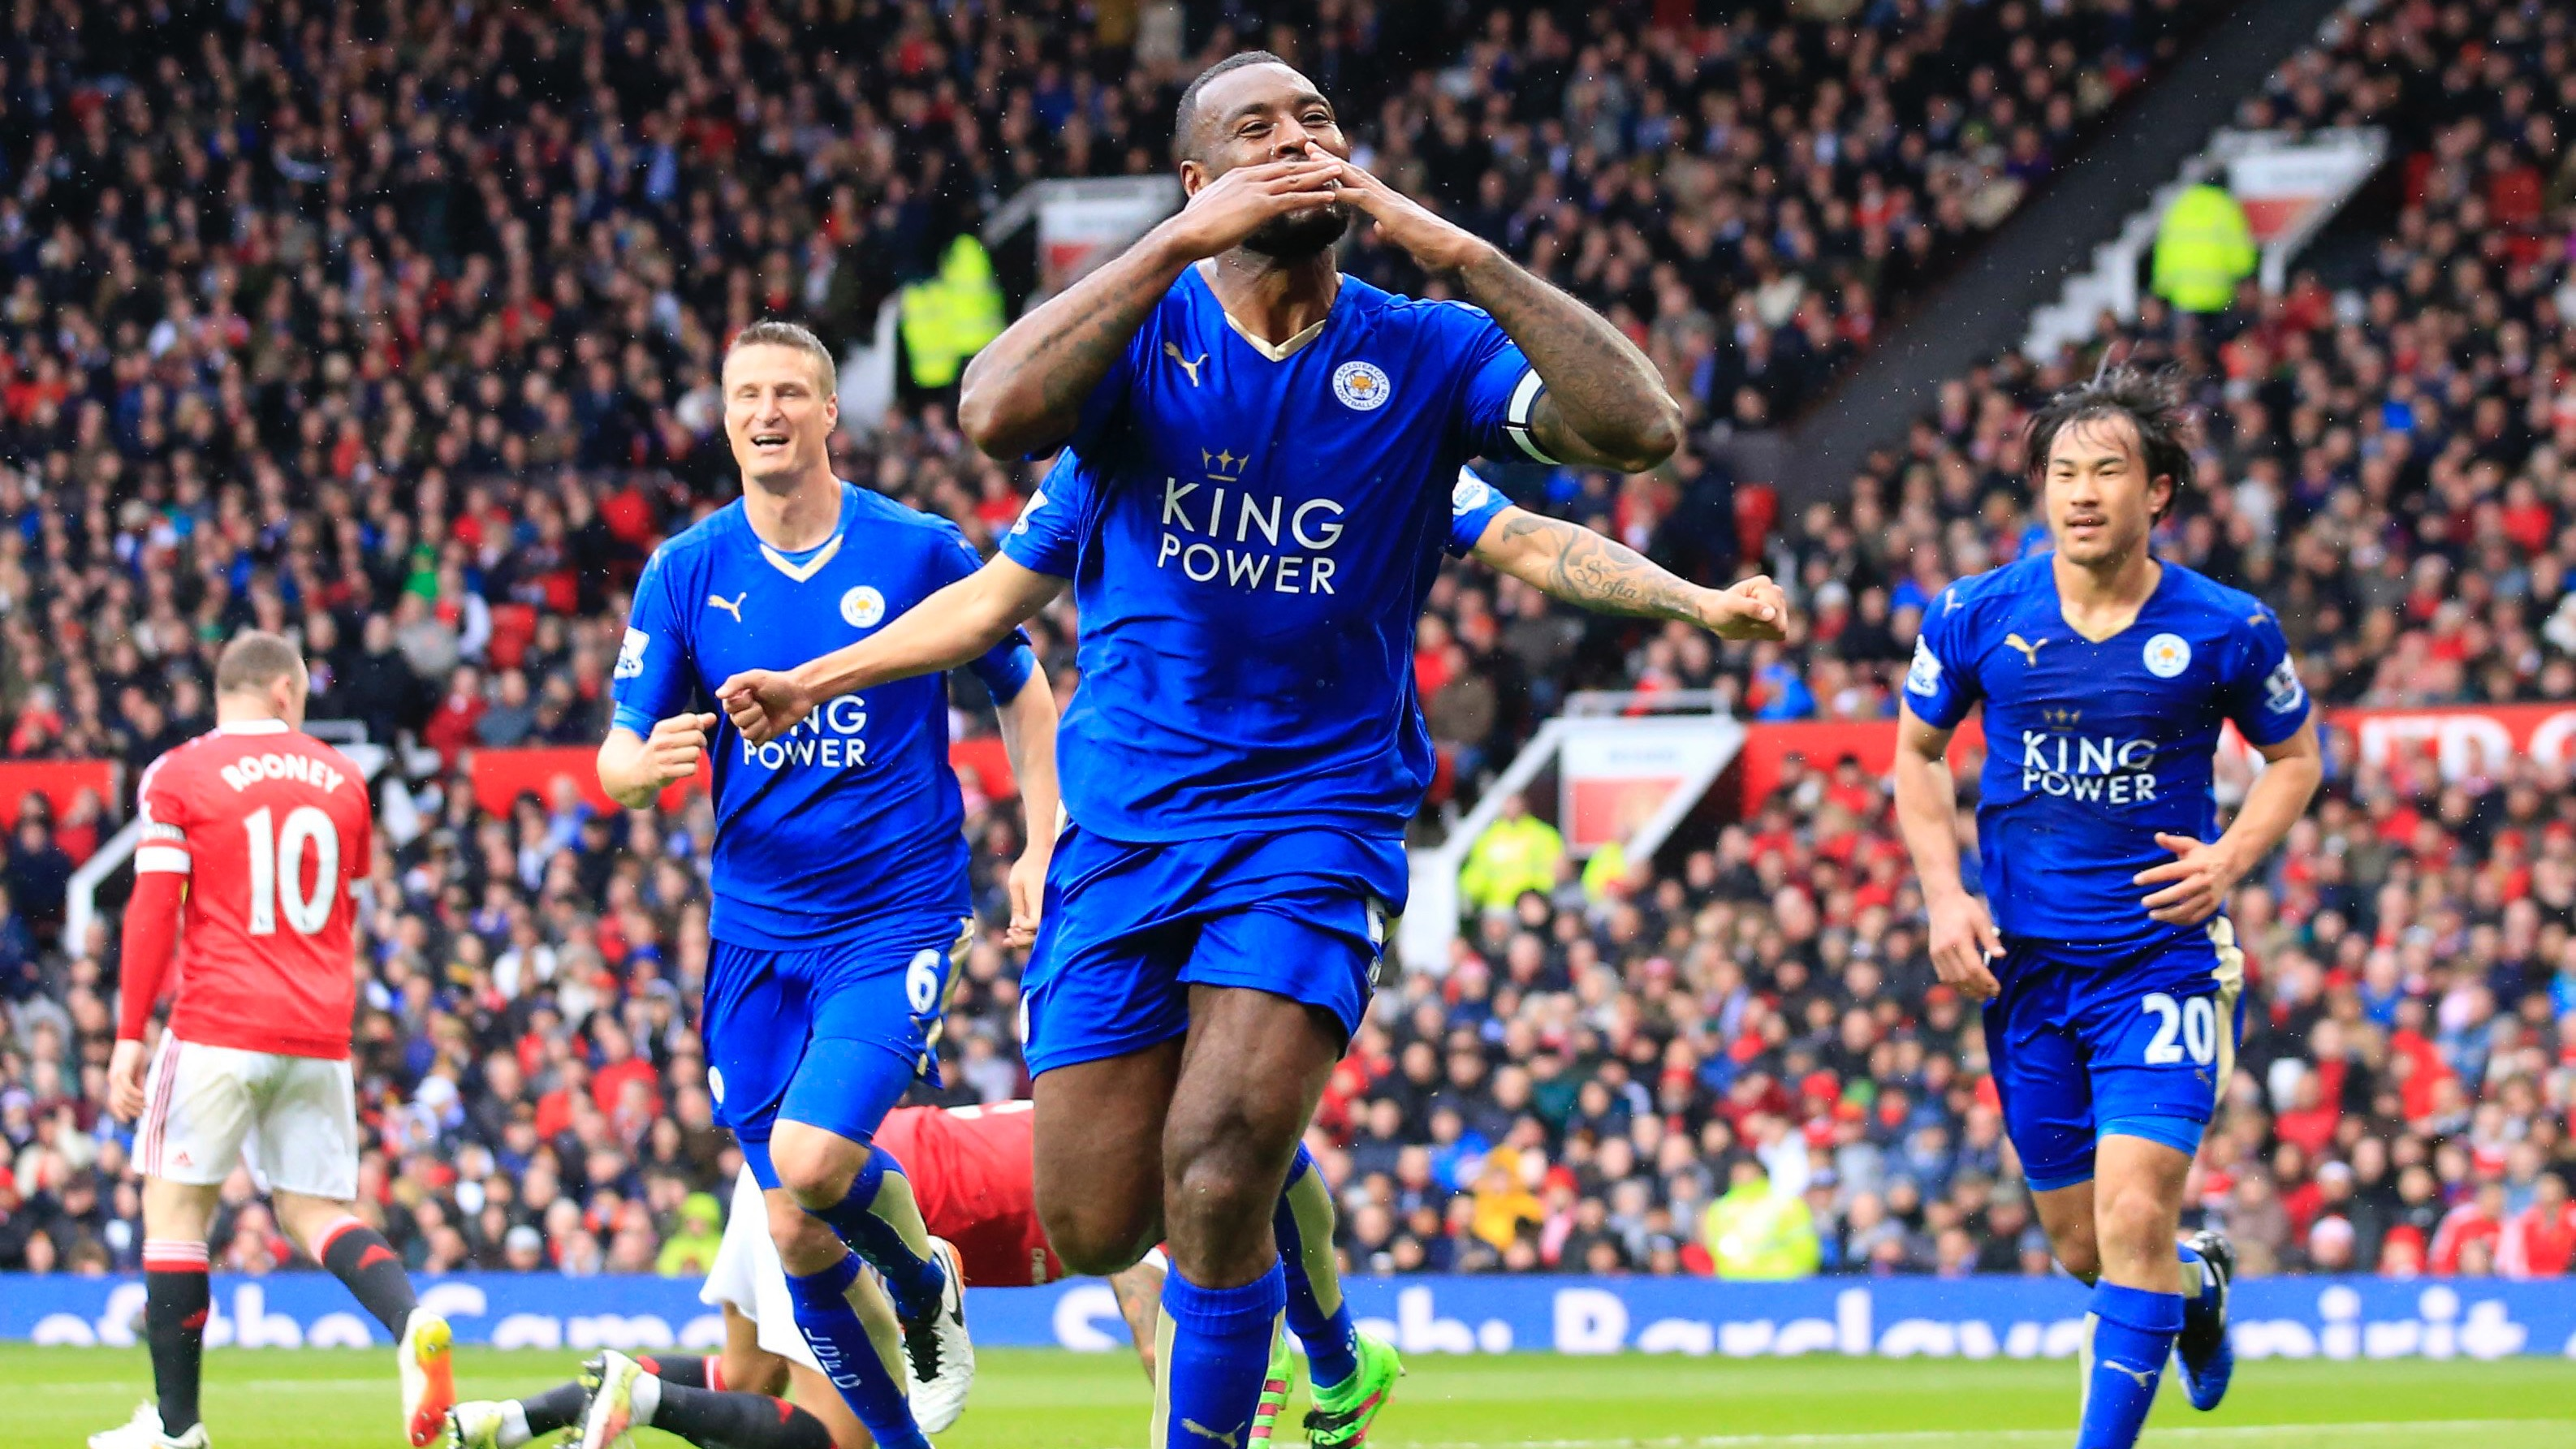 Leicester wins the Premier League: The biggest upset in the